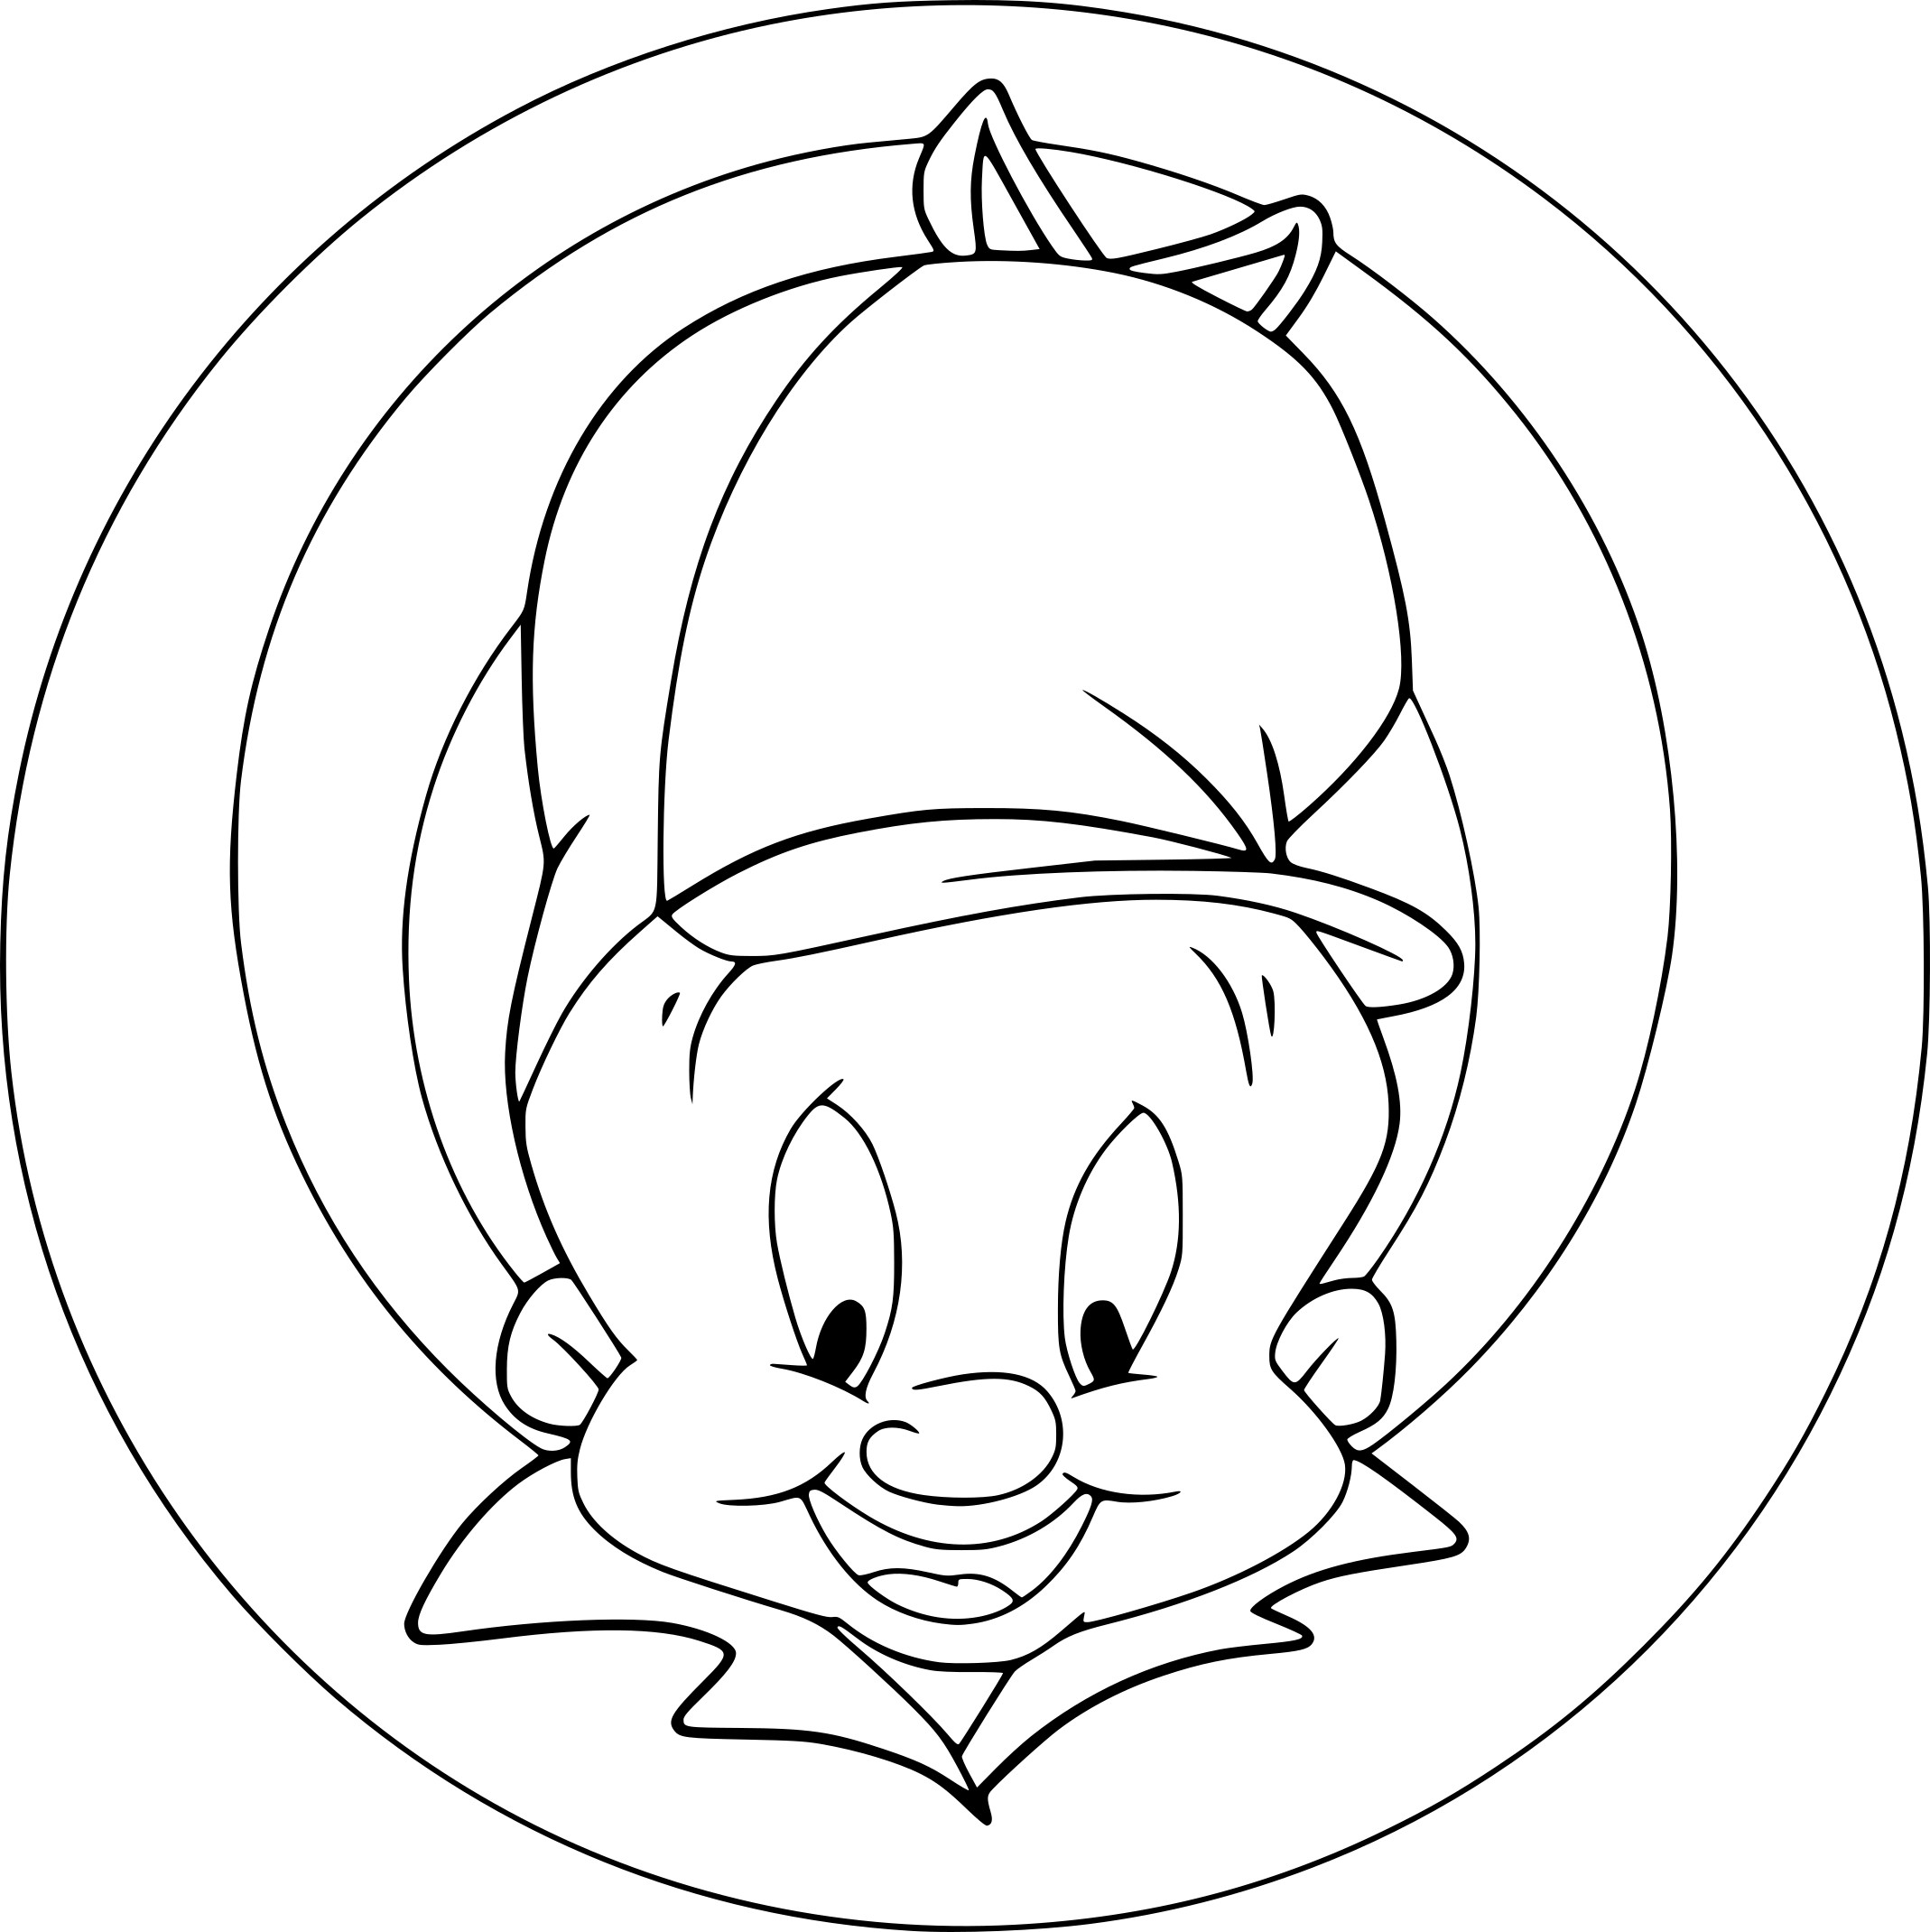 acme cartoon coloring pages - photo#38